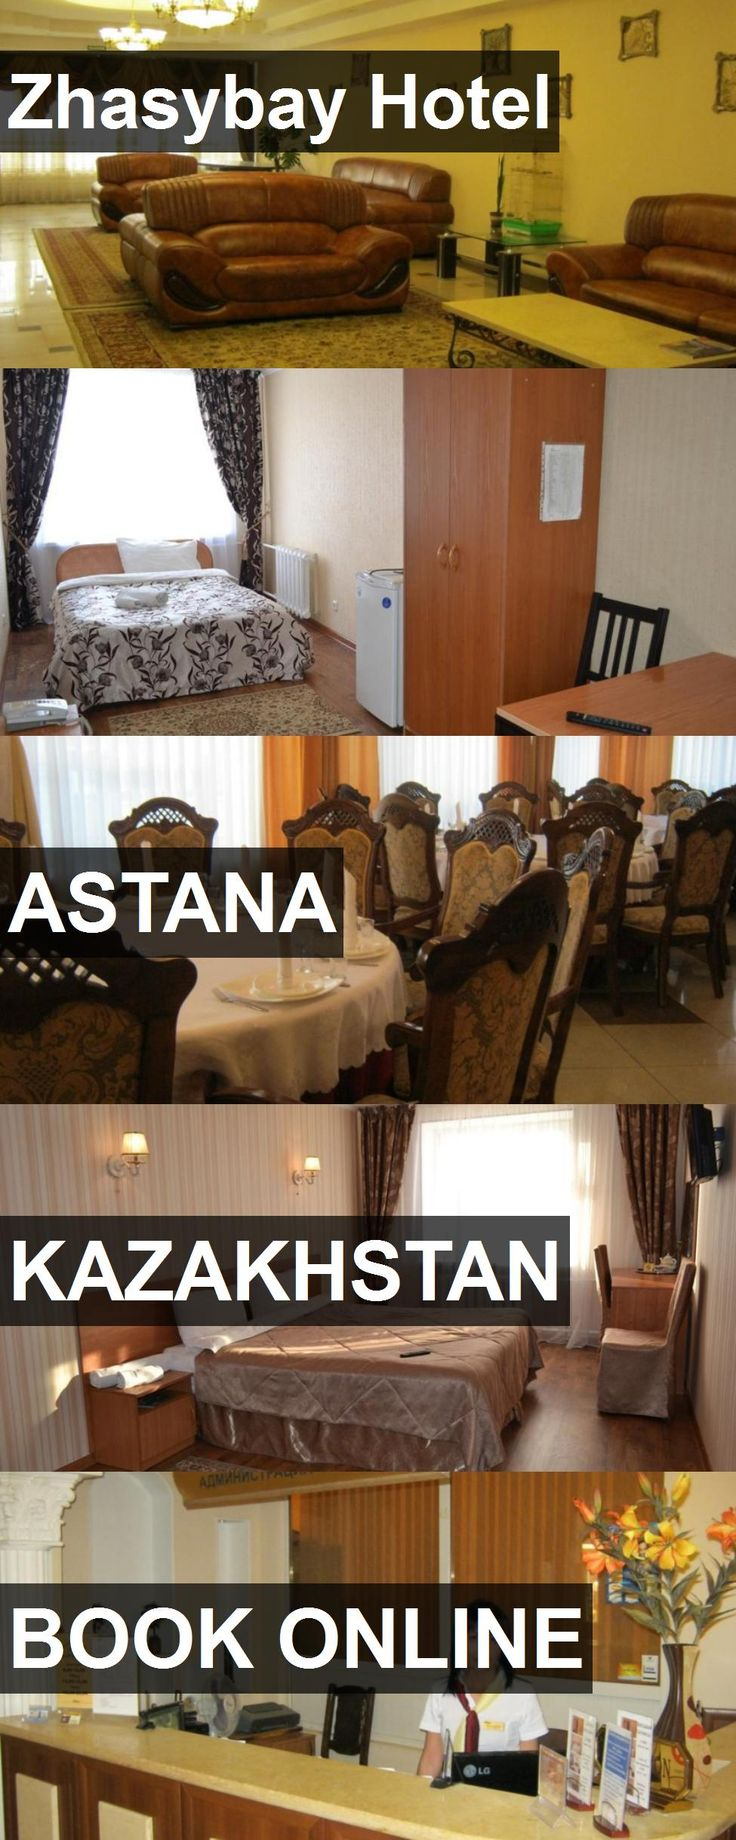 Zhasybay Hotel in Astana, Kazakhstan. For more information, photos, reviews and best prices please follow the link. #Kazakhstan #Astana #travel #vacation #hotel